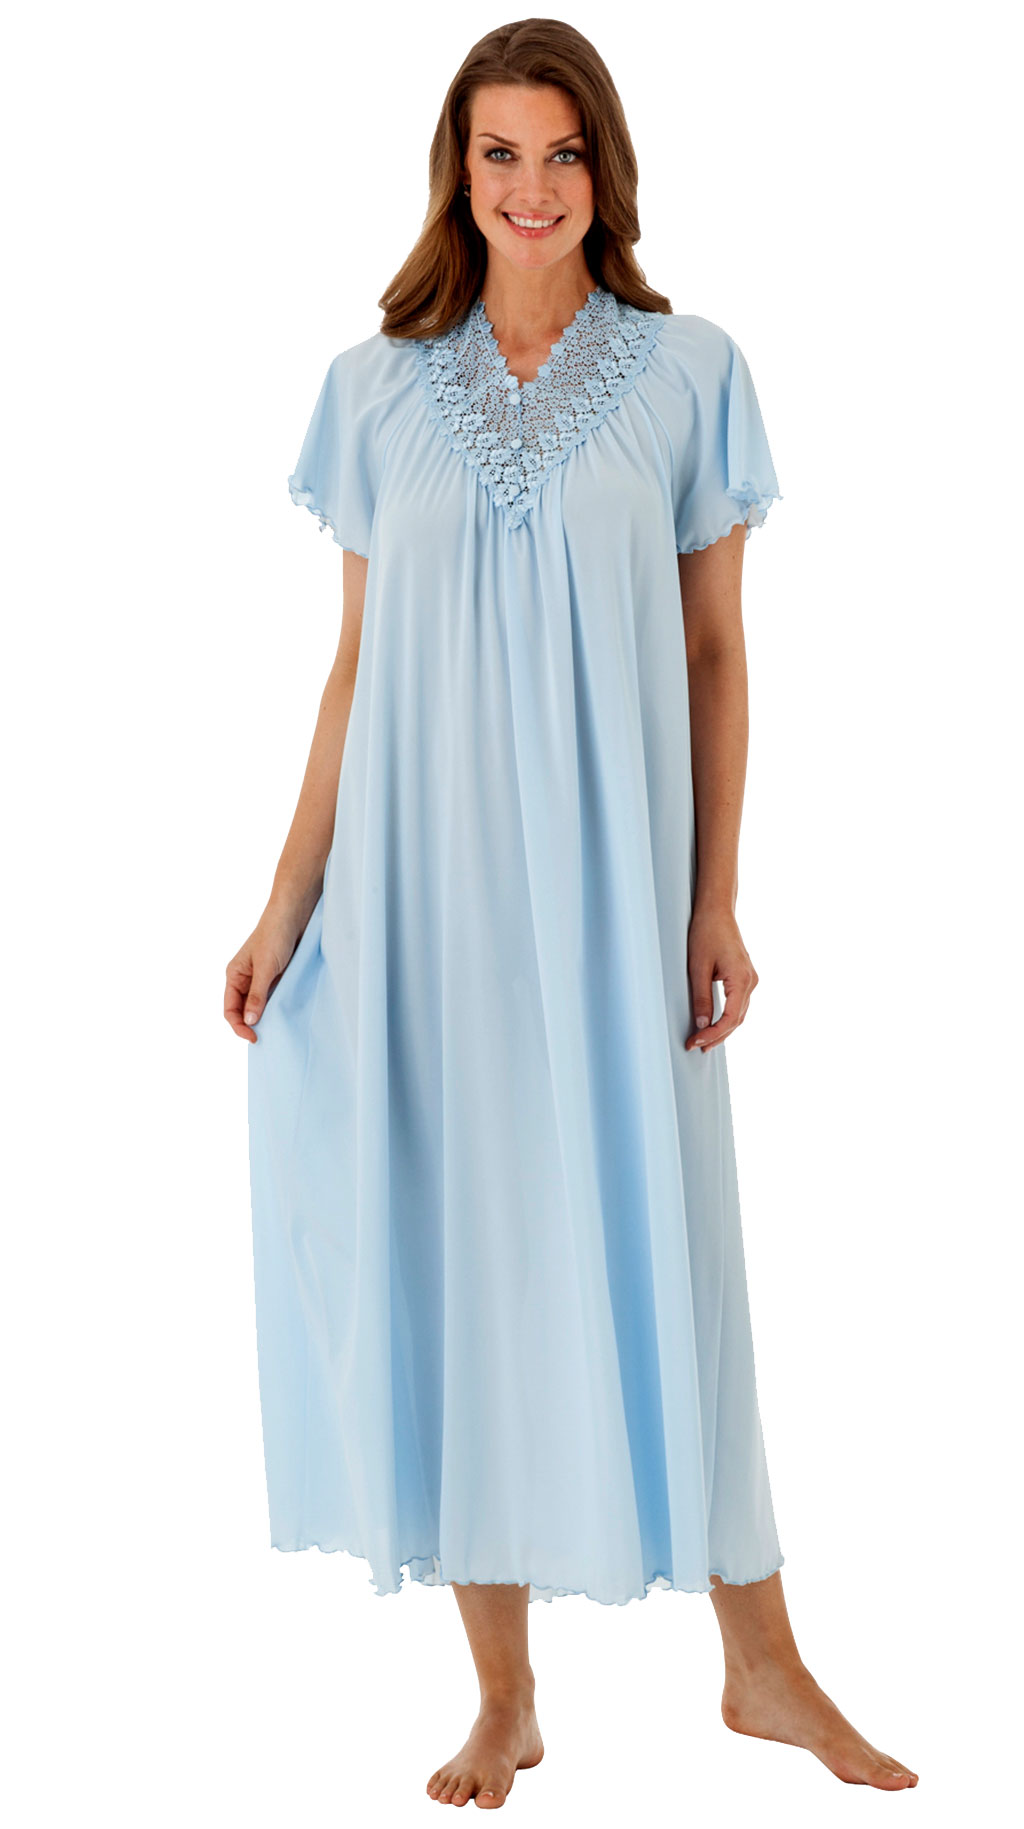 Shop for black lace nightgown online at Target. Free shipping on purchases over $35 and save 5% every day with your Target REDcard.